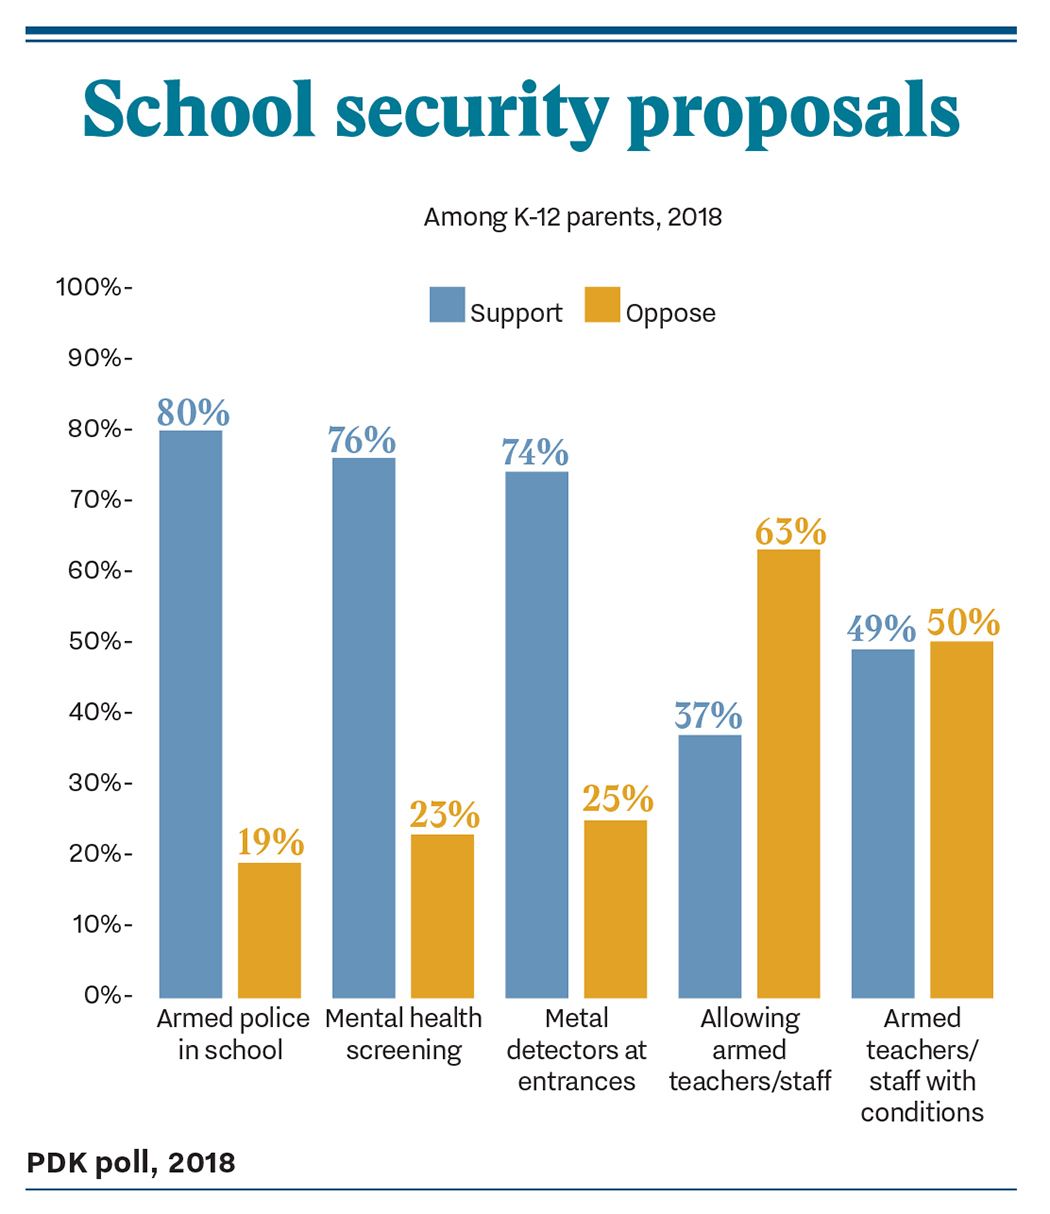 PDK Poll results showing K-12 parents support for school security measures